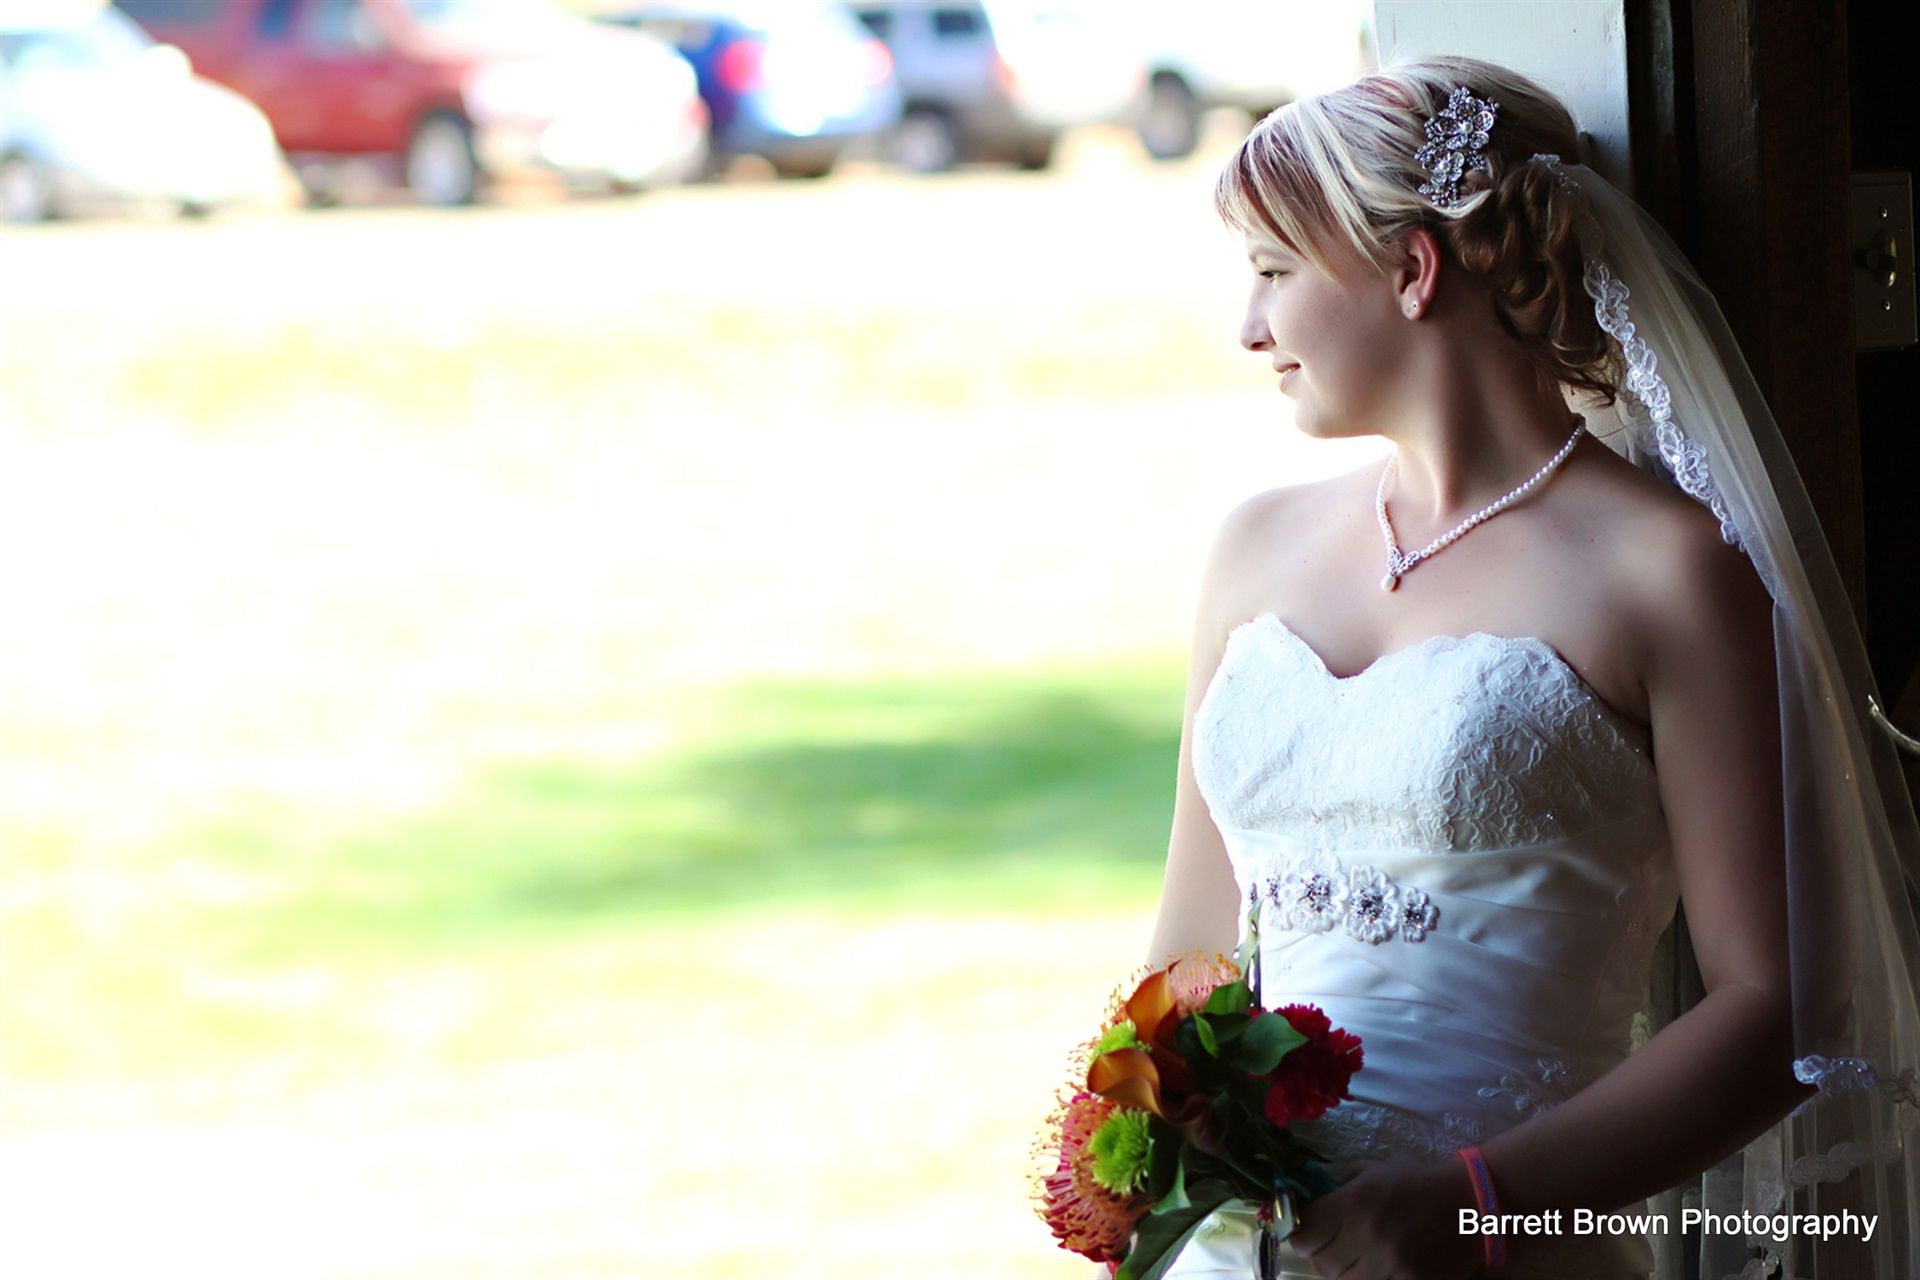 Bride, holding a red and white bouquet, looking out to blurred field